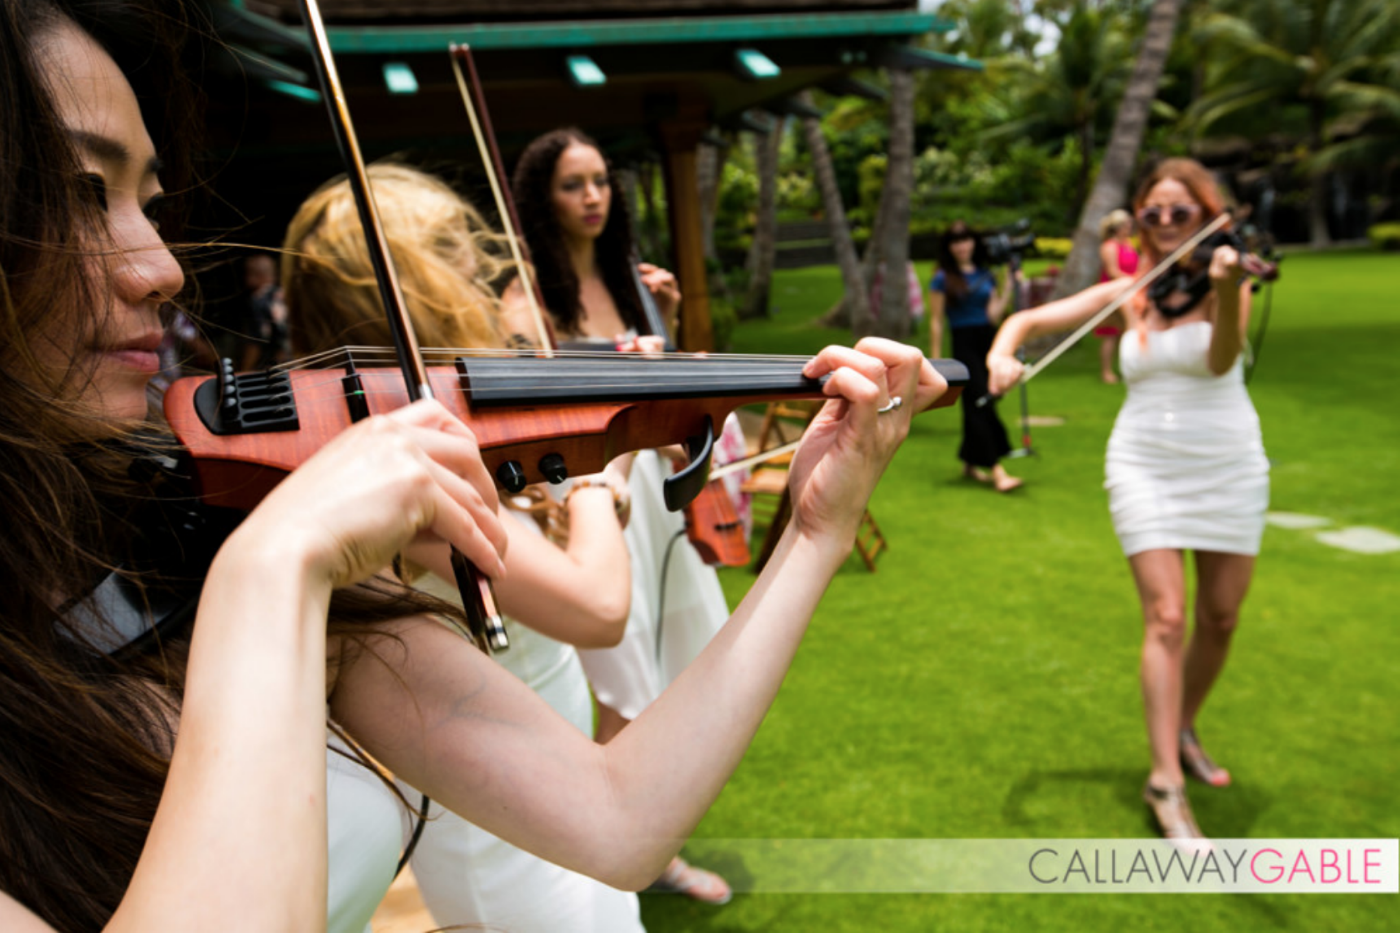 los-angeles-wedding-music-live-event-electric-violinist-string-quartet-DJ-maui-edm-2.png